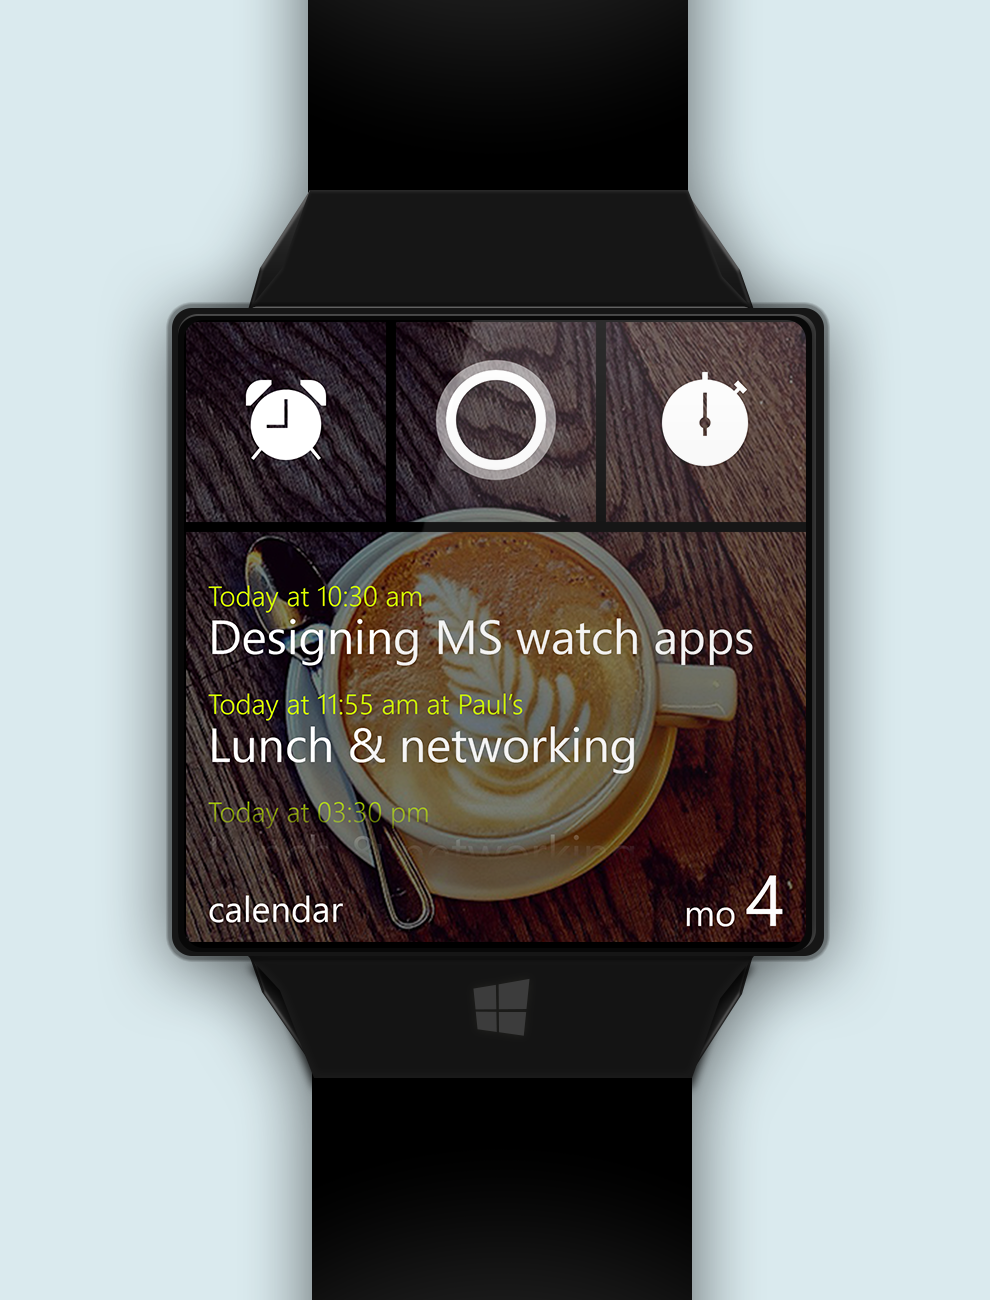 Windows_watch_calendar_cortana_stopwatch_alarm